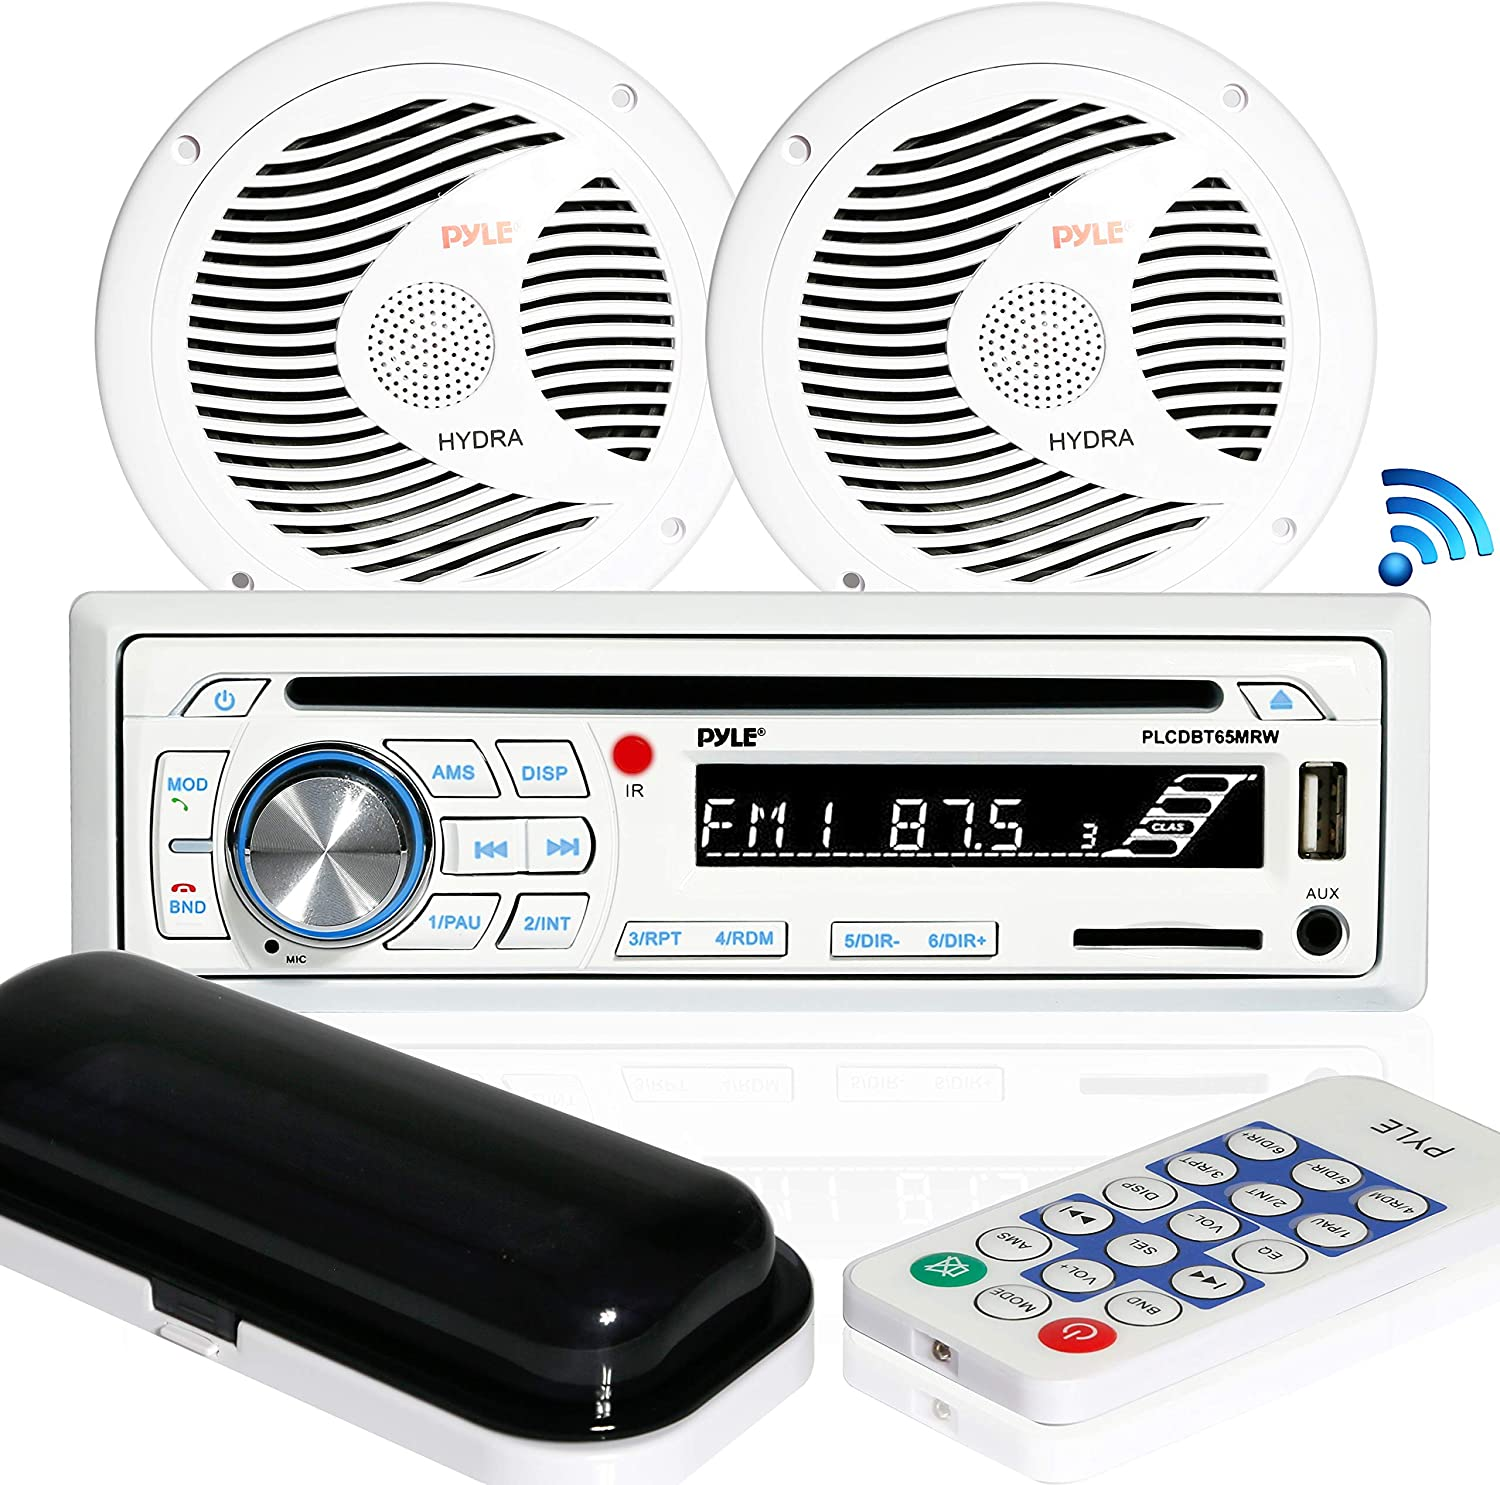 """Marine Stereo Receiver Speaker Kit - In-Dash LCD Digital Console Built-in Bluetooth & Microphone 6.5"""" Waterproof Speakers (2) w/ MP3/USB/SD/AUX/FM Radio Reader & Remote Control - Pyle PLCDBT65MRW"""